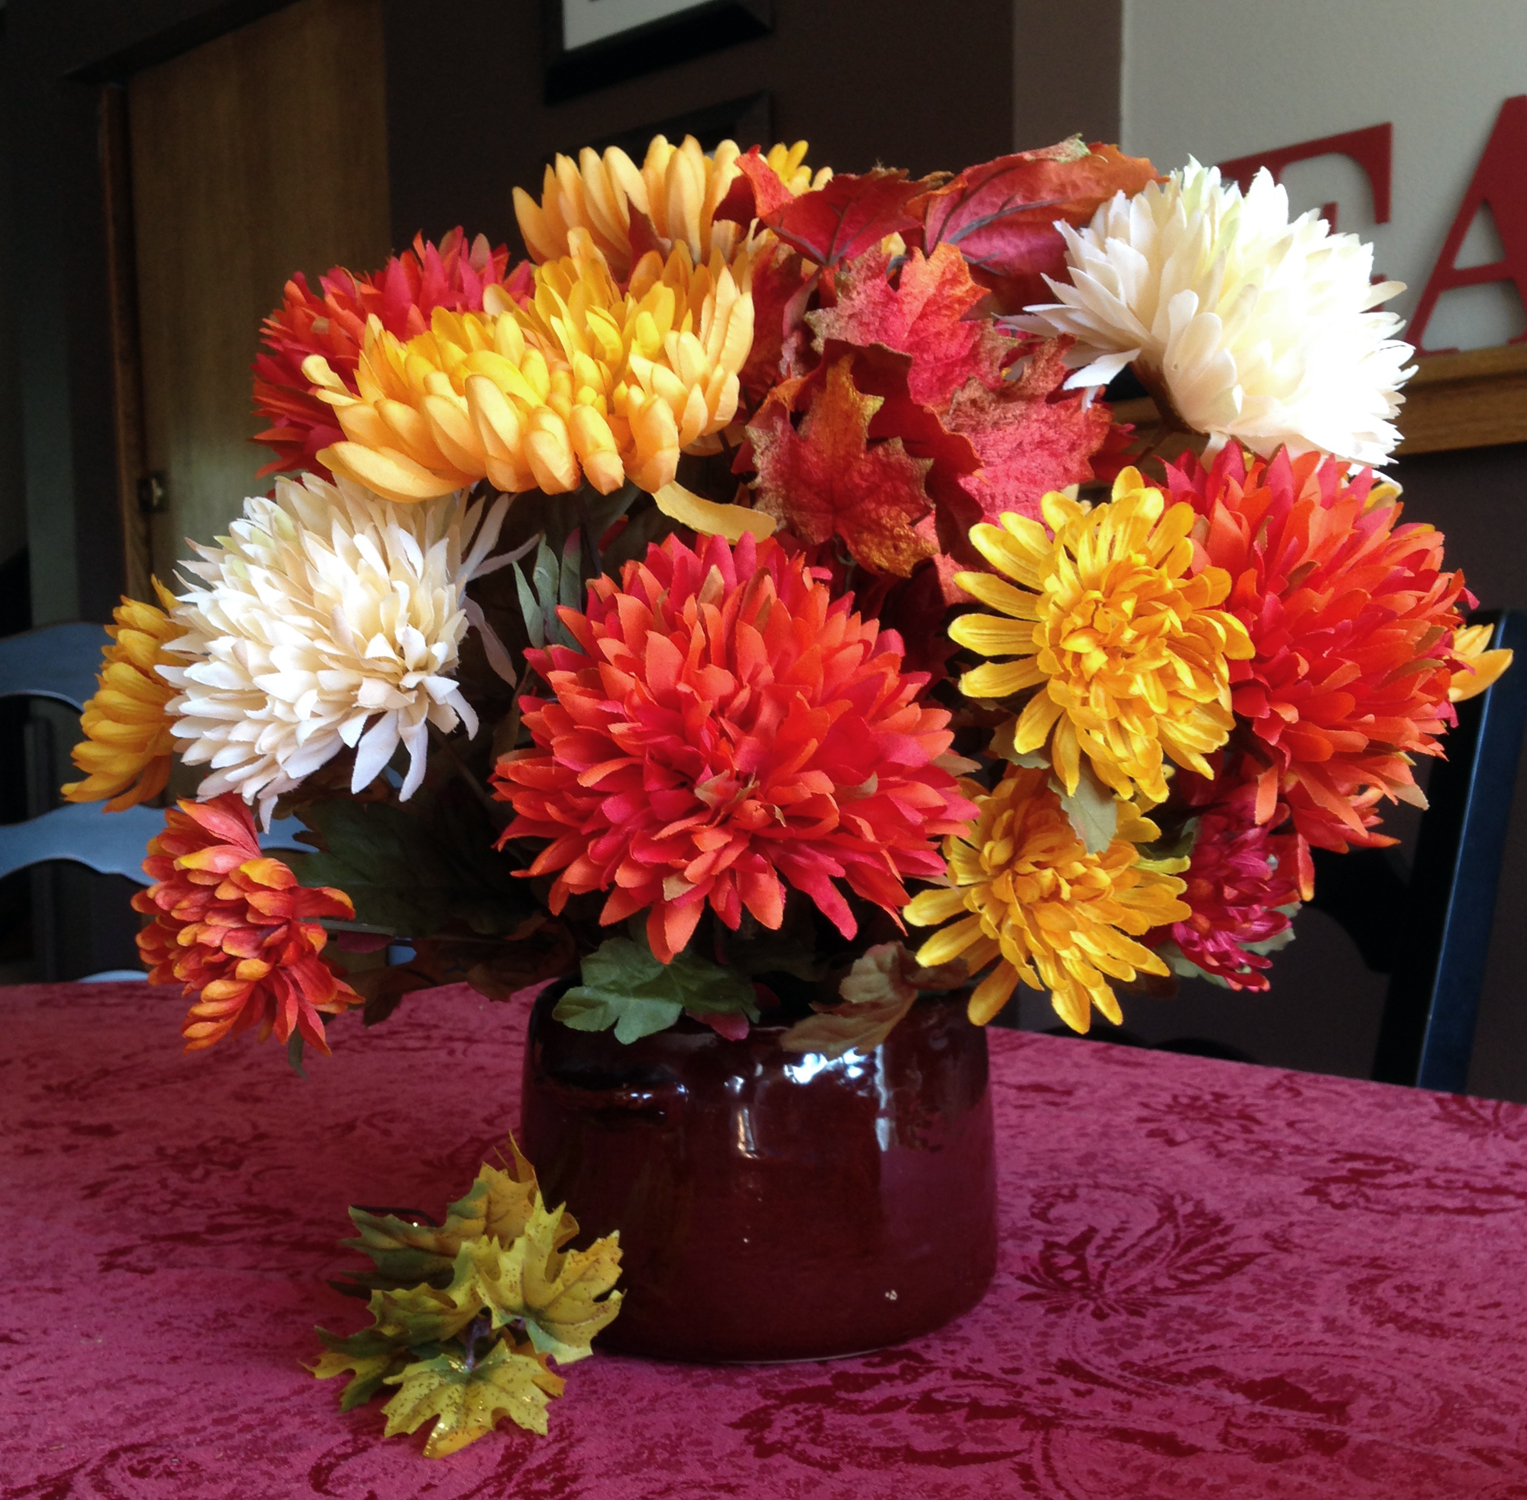 Fall Floral Arrangement DIY Tutorial - Love My DIY Home